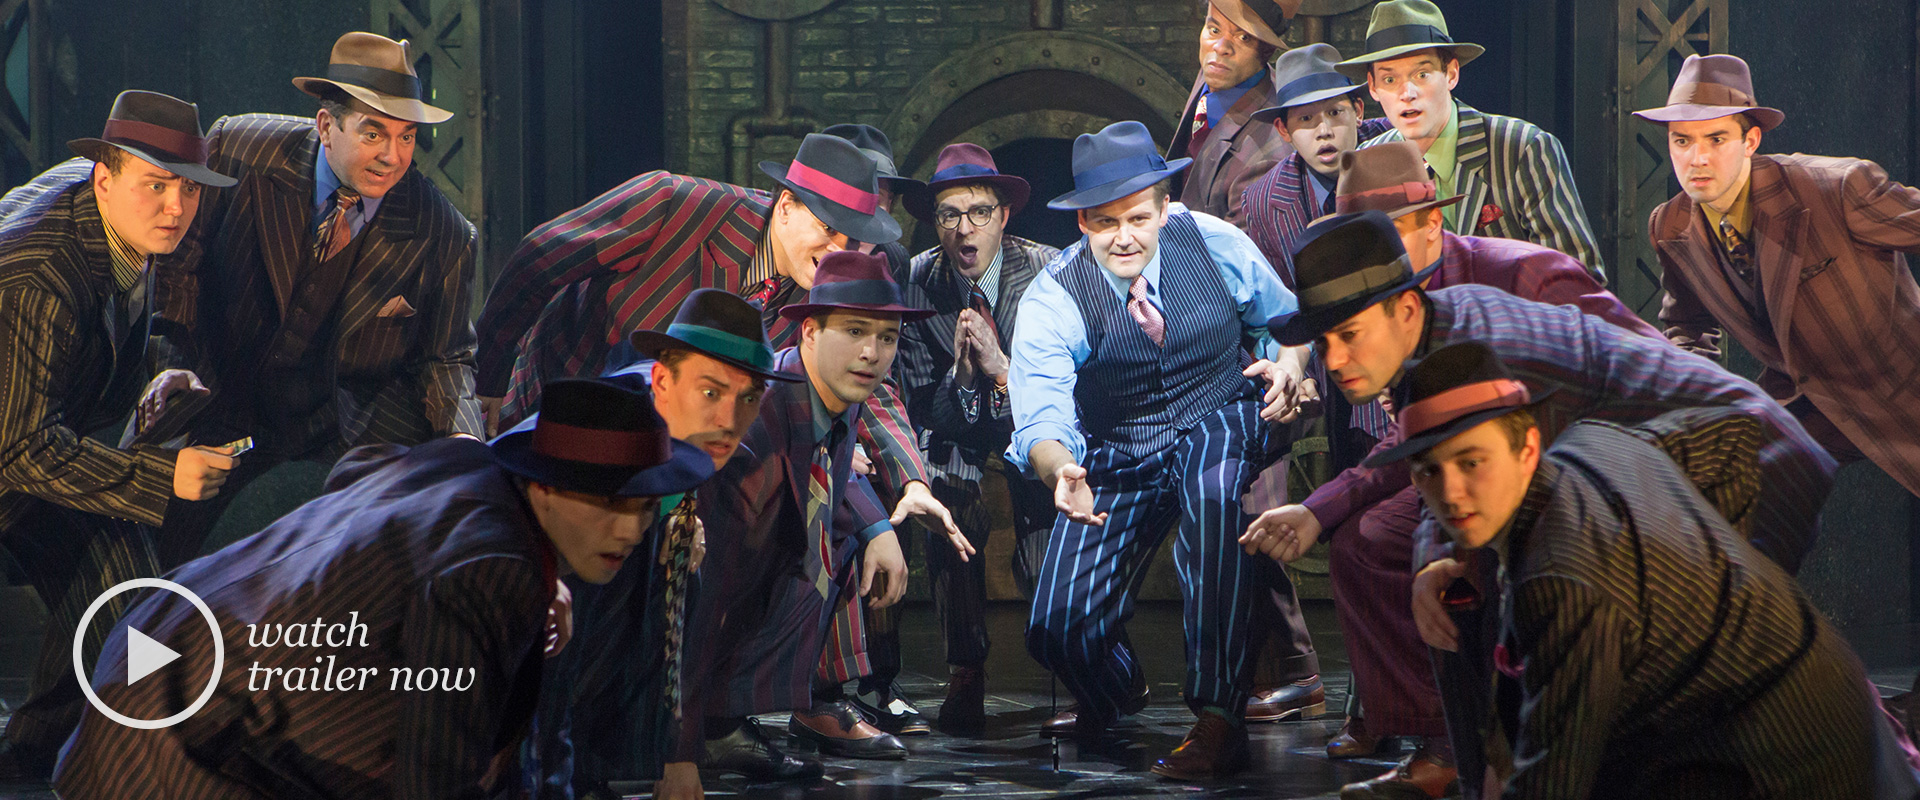 Publicity image from Guys & Dolls featuring company members